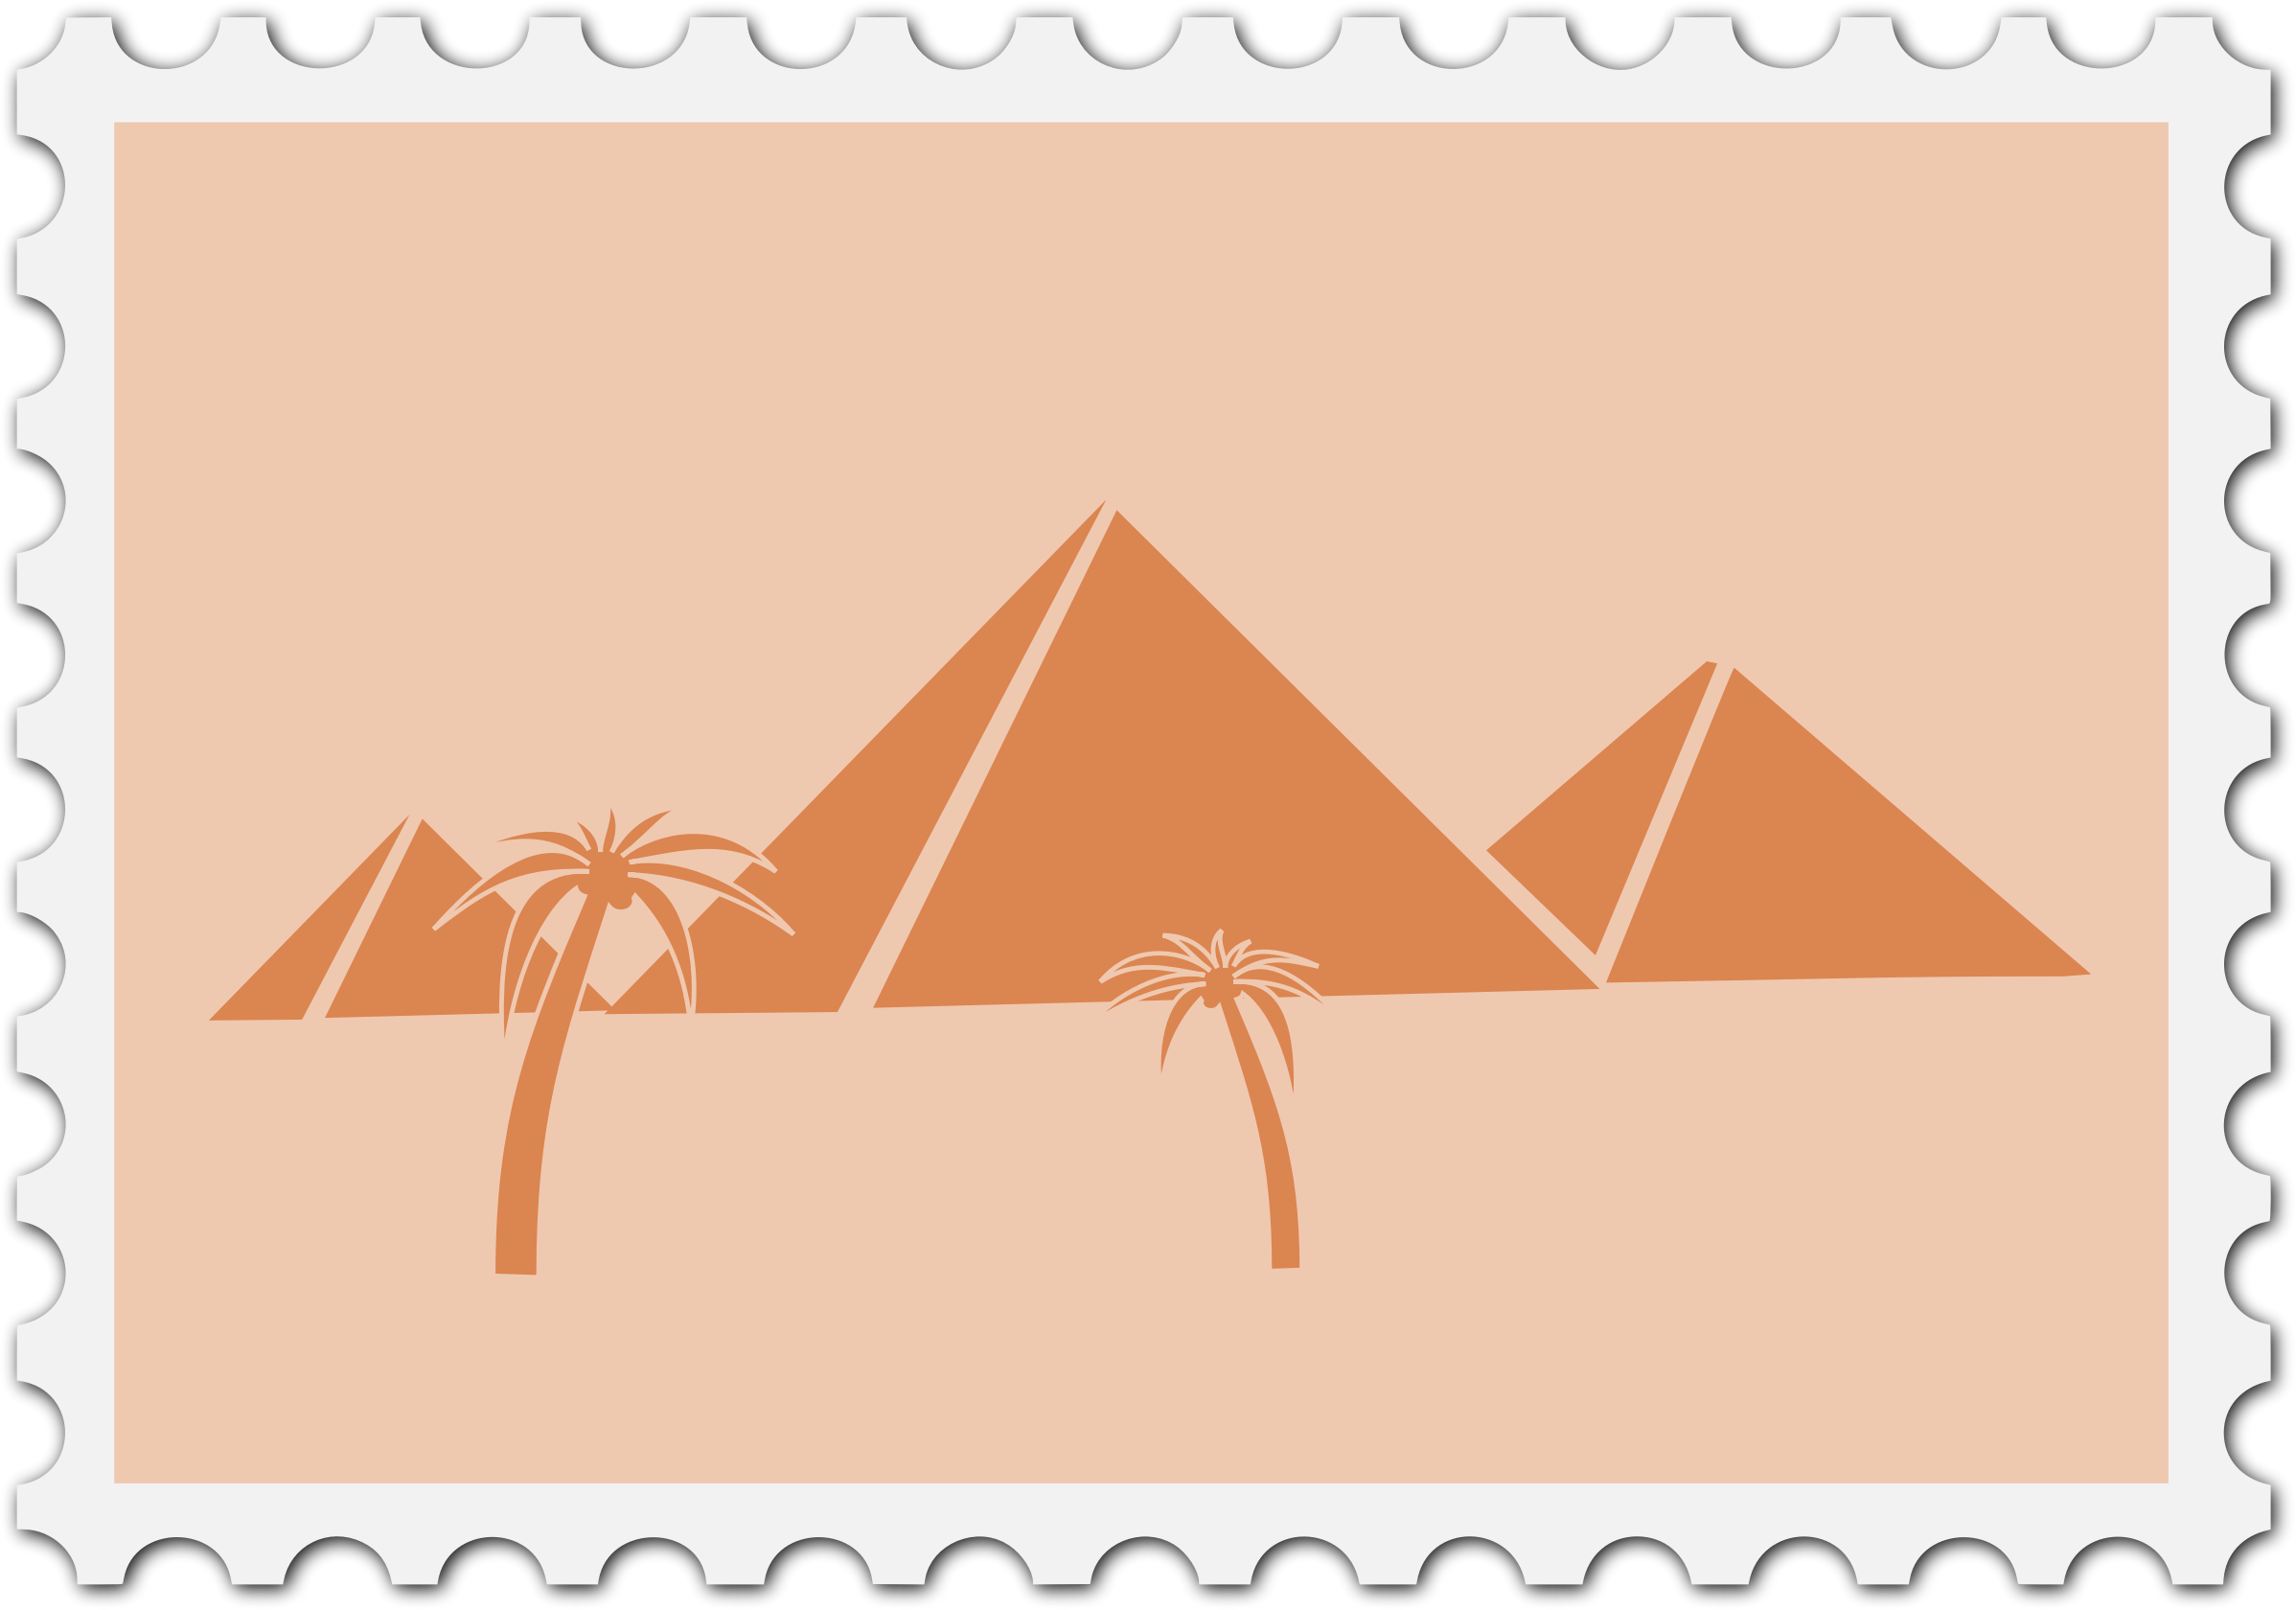 Egyptian stamp by Firkin